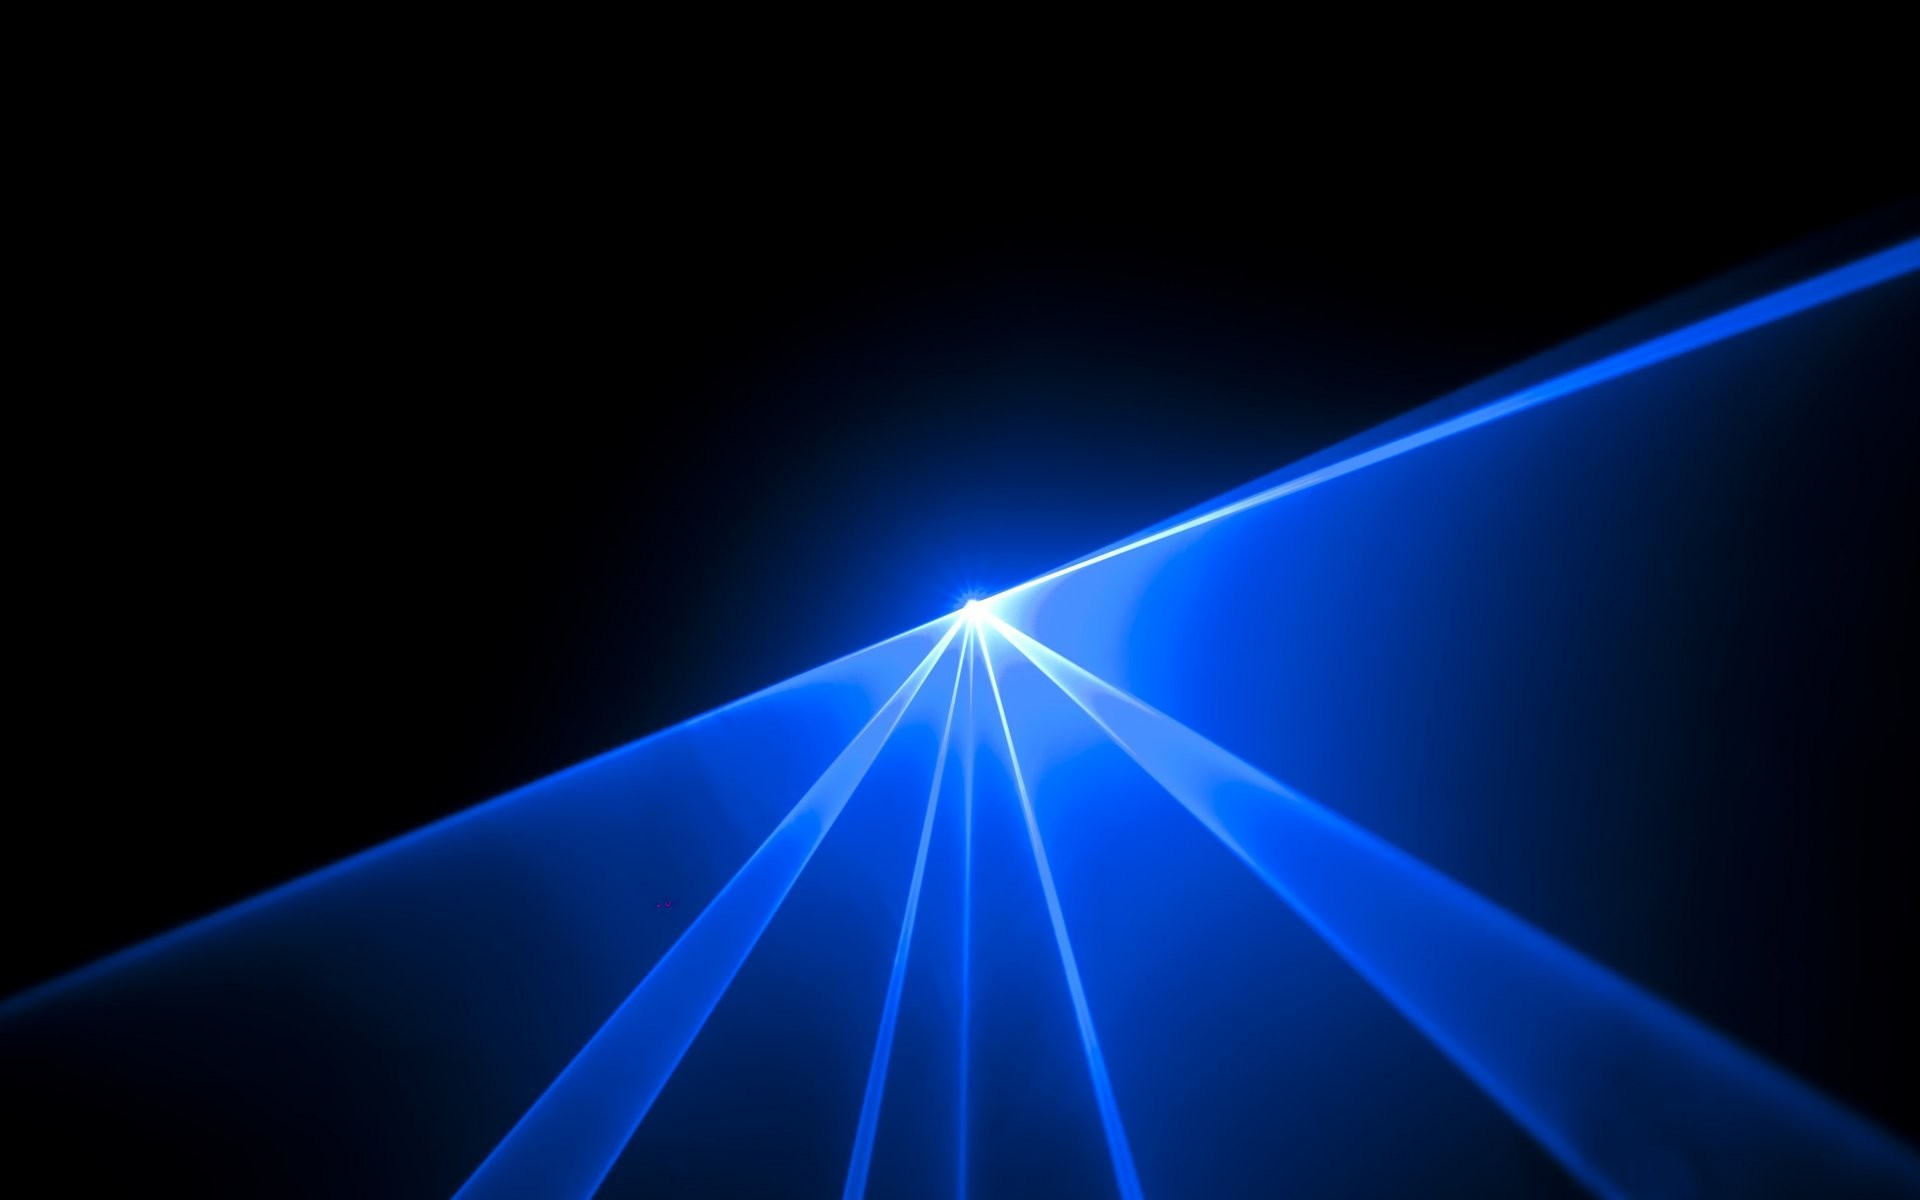 Illusion Wallpaper 3d Laser Background 183 ① Download Free Awesome Wallpapers For